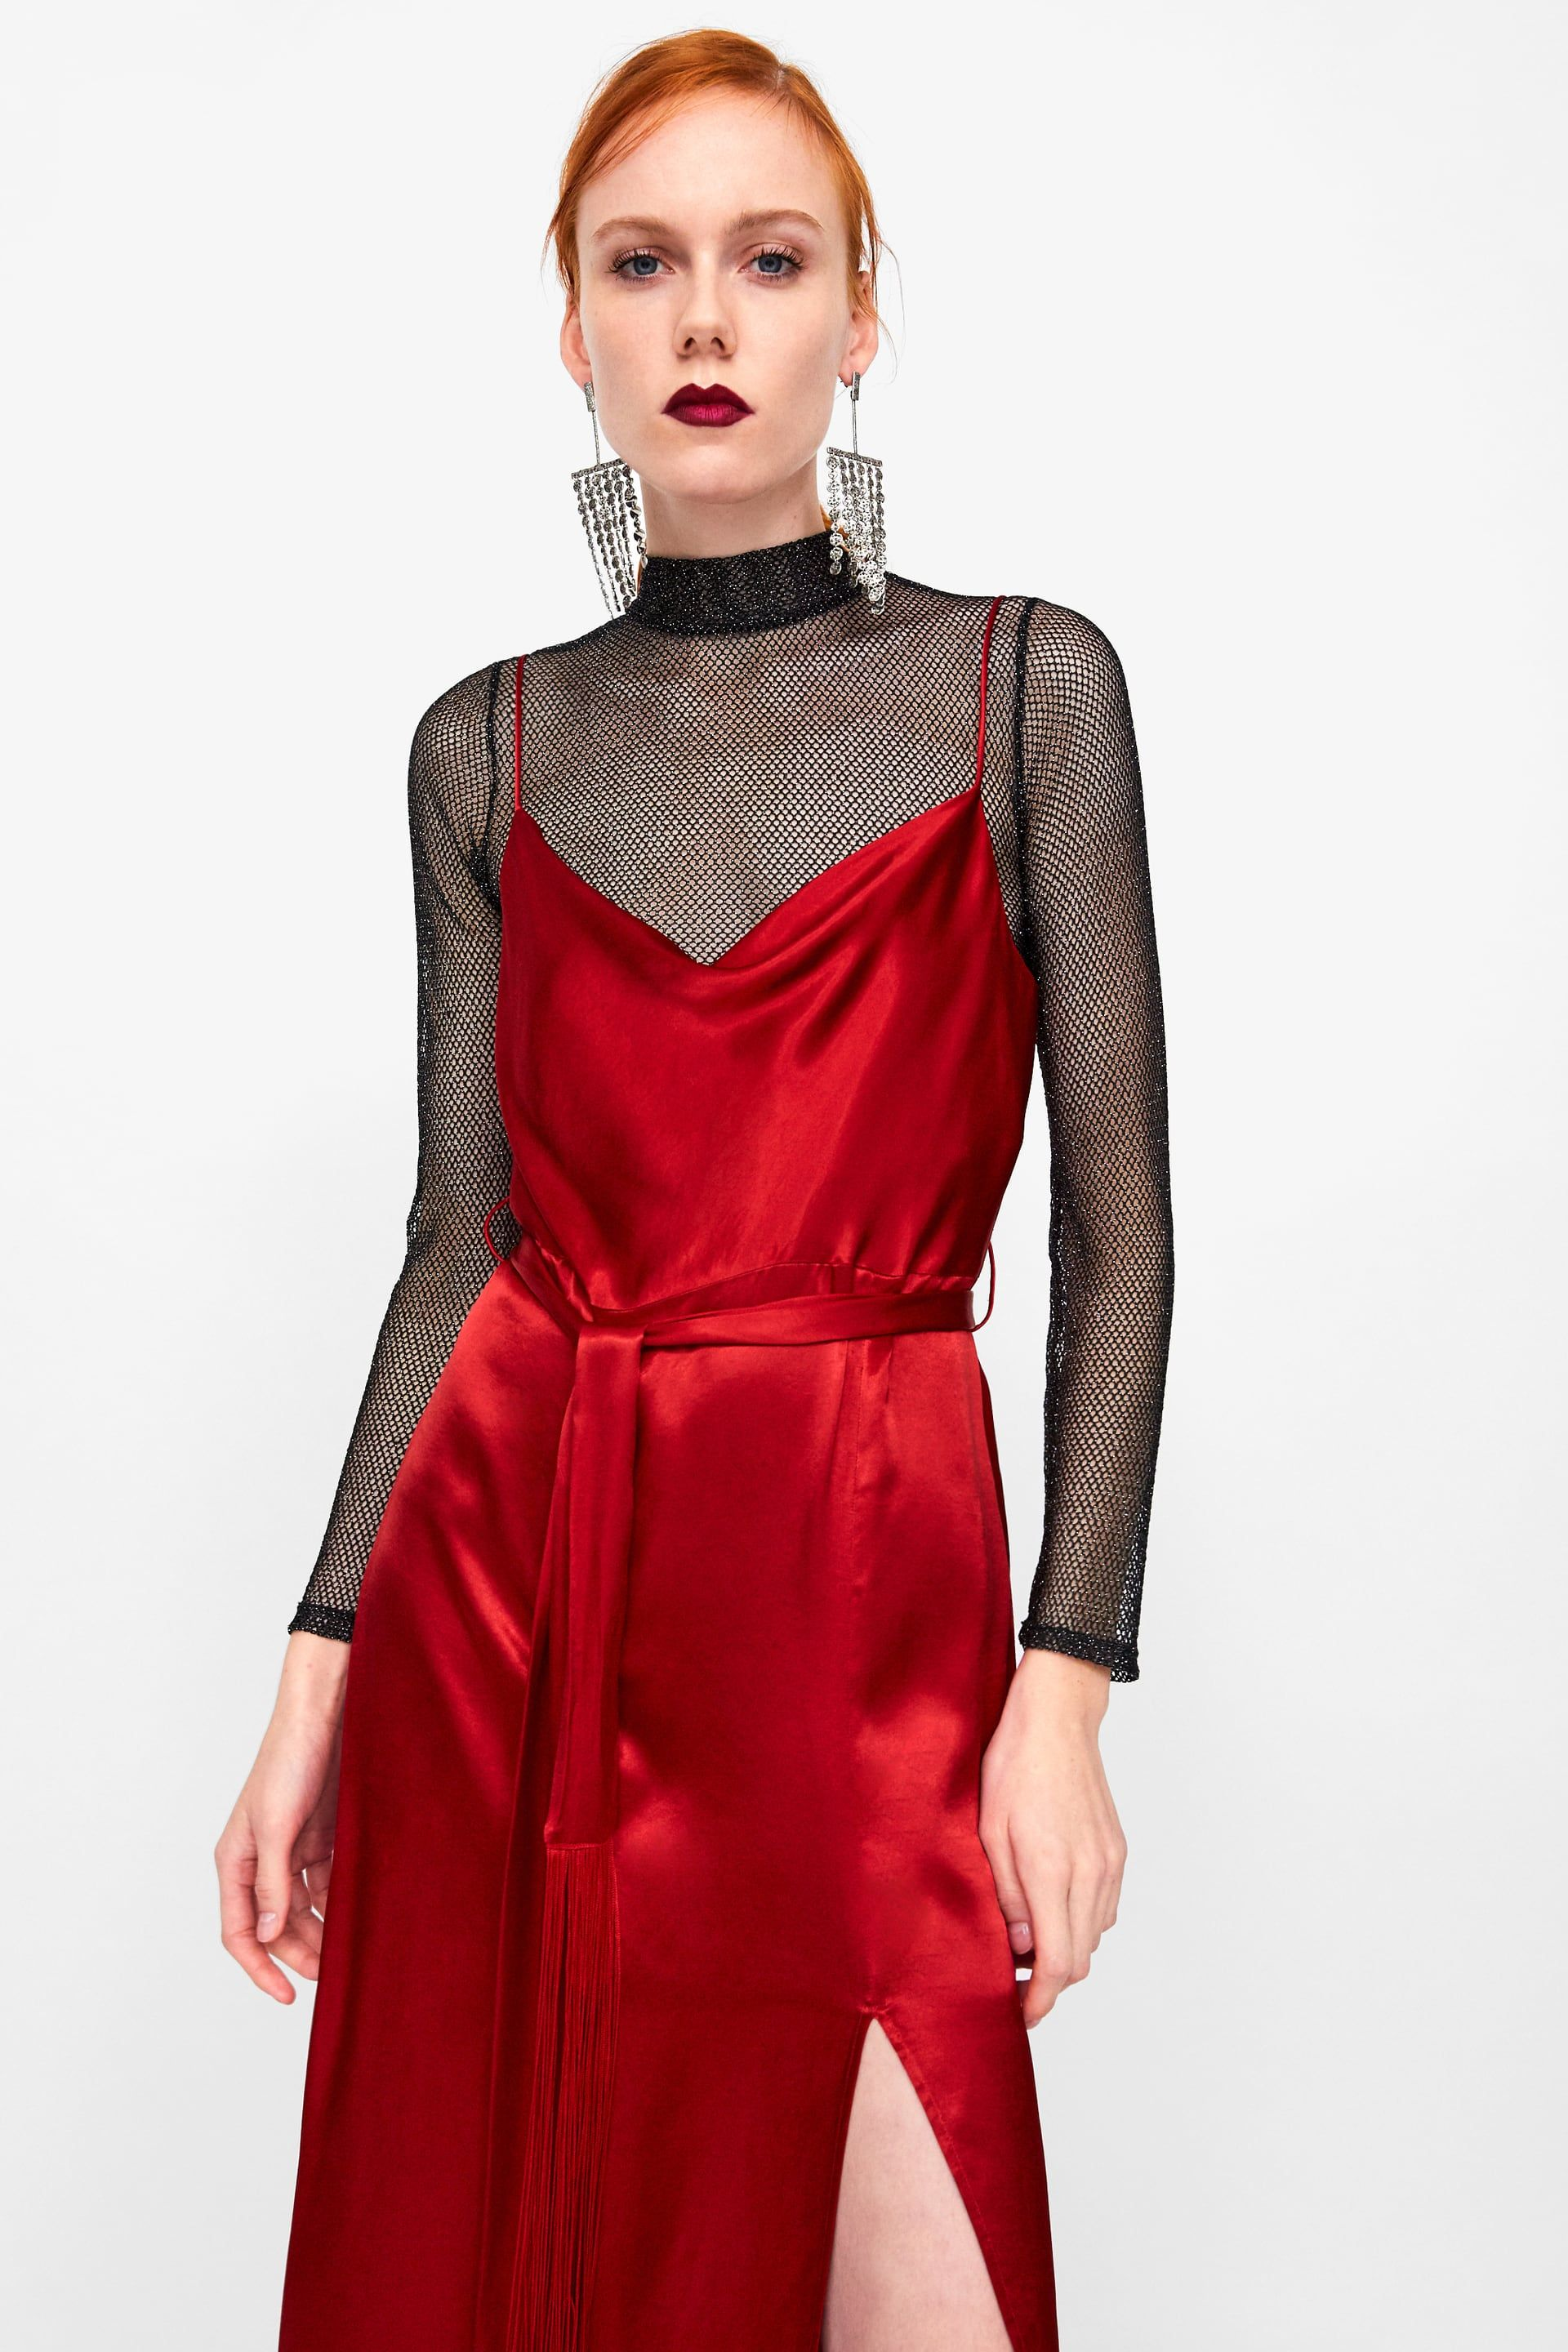 red dress ZARA  Rotes kleid outfit, Rot anziehen, Herbst kleid